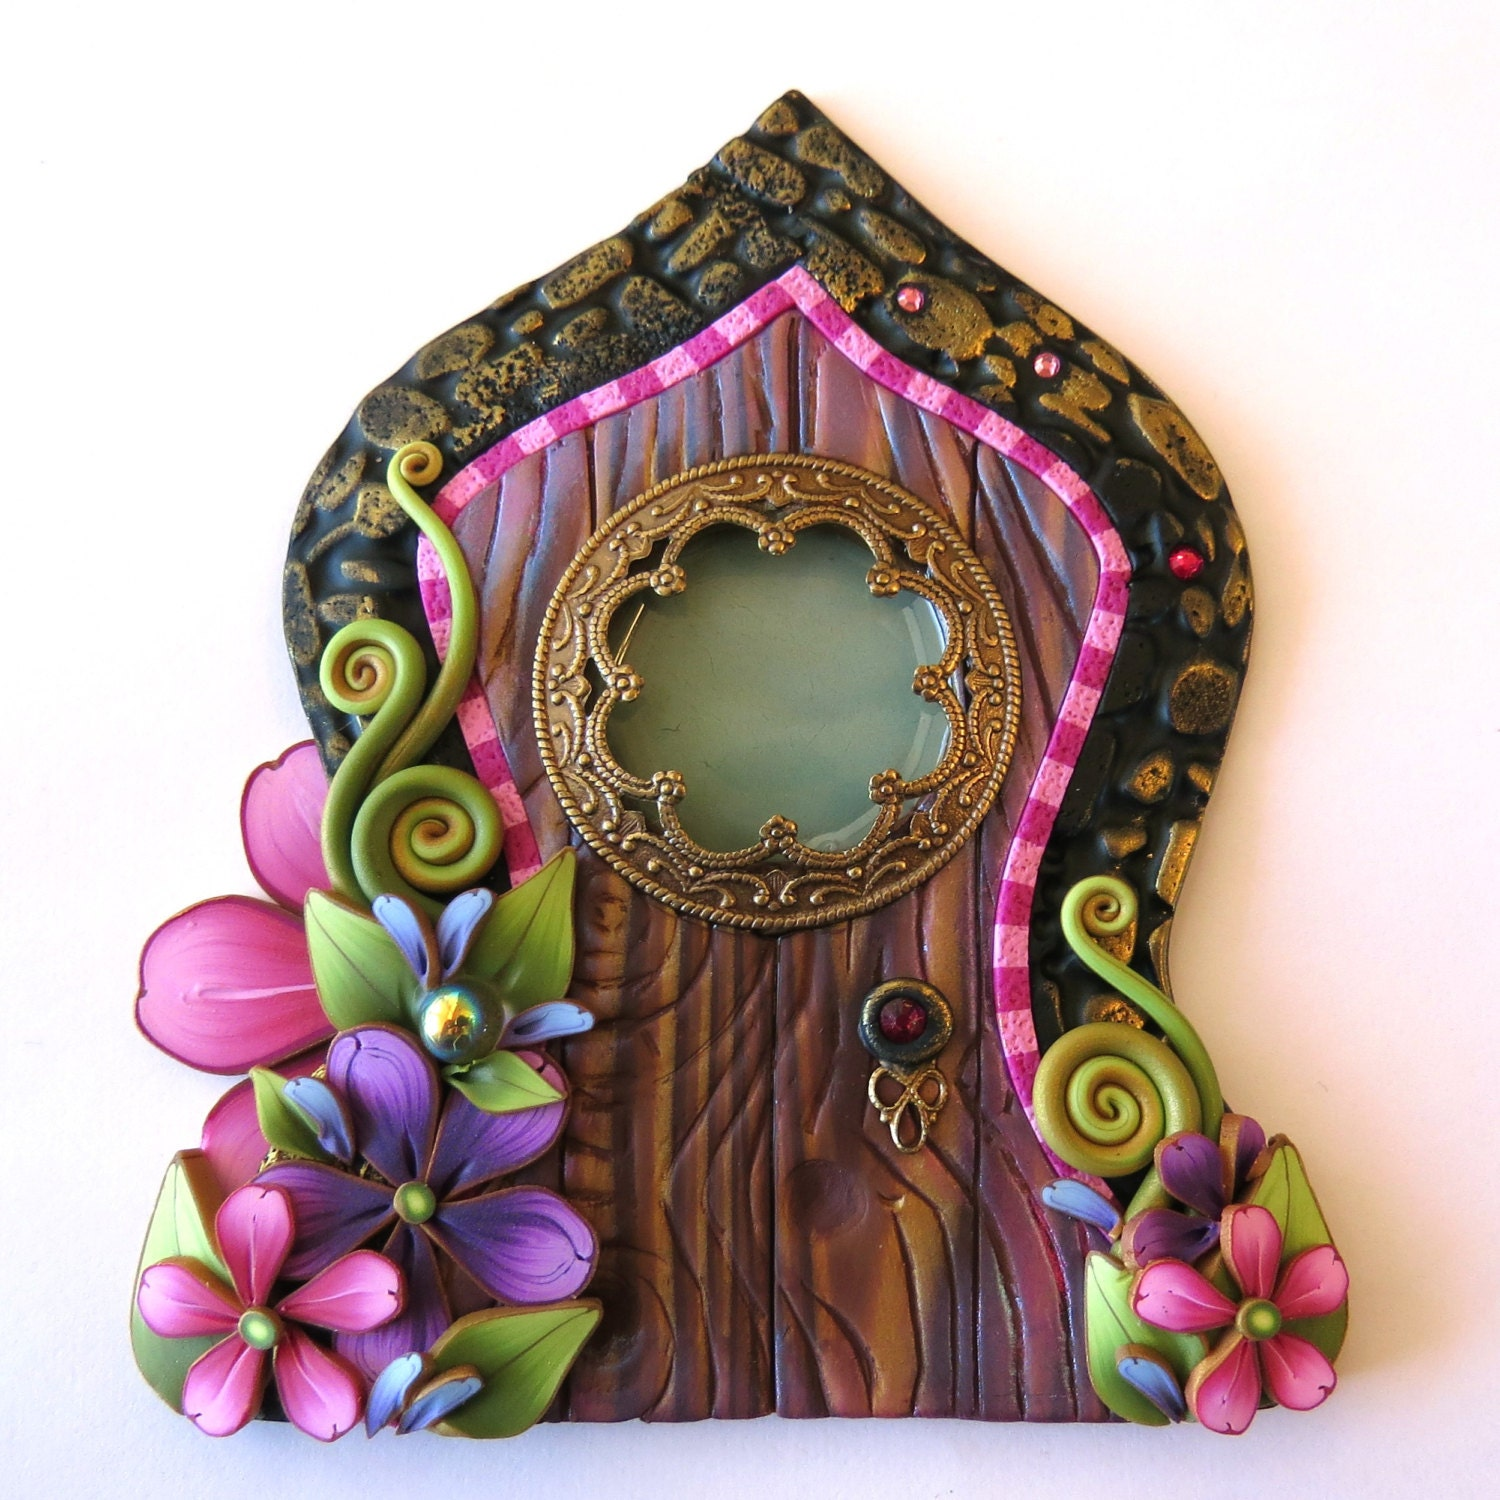 Fairy door pixie portal home decor fairy garden accessory for The little fairy door